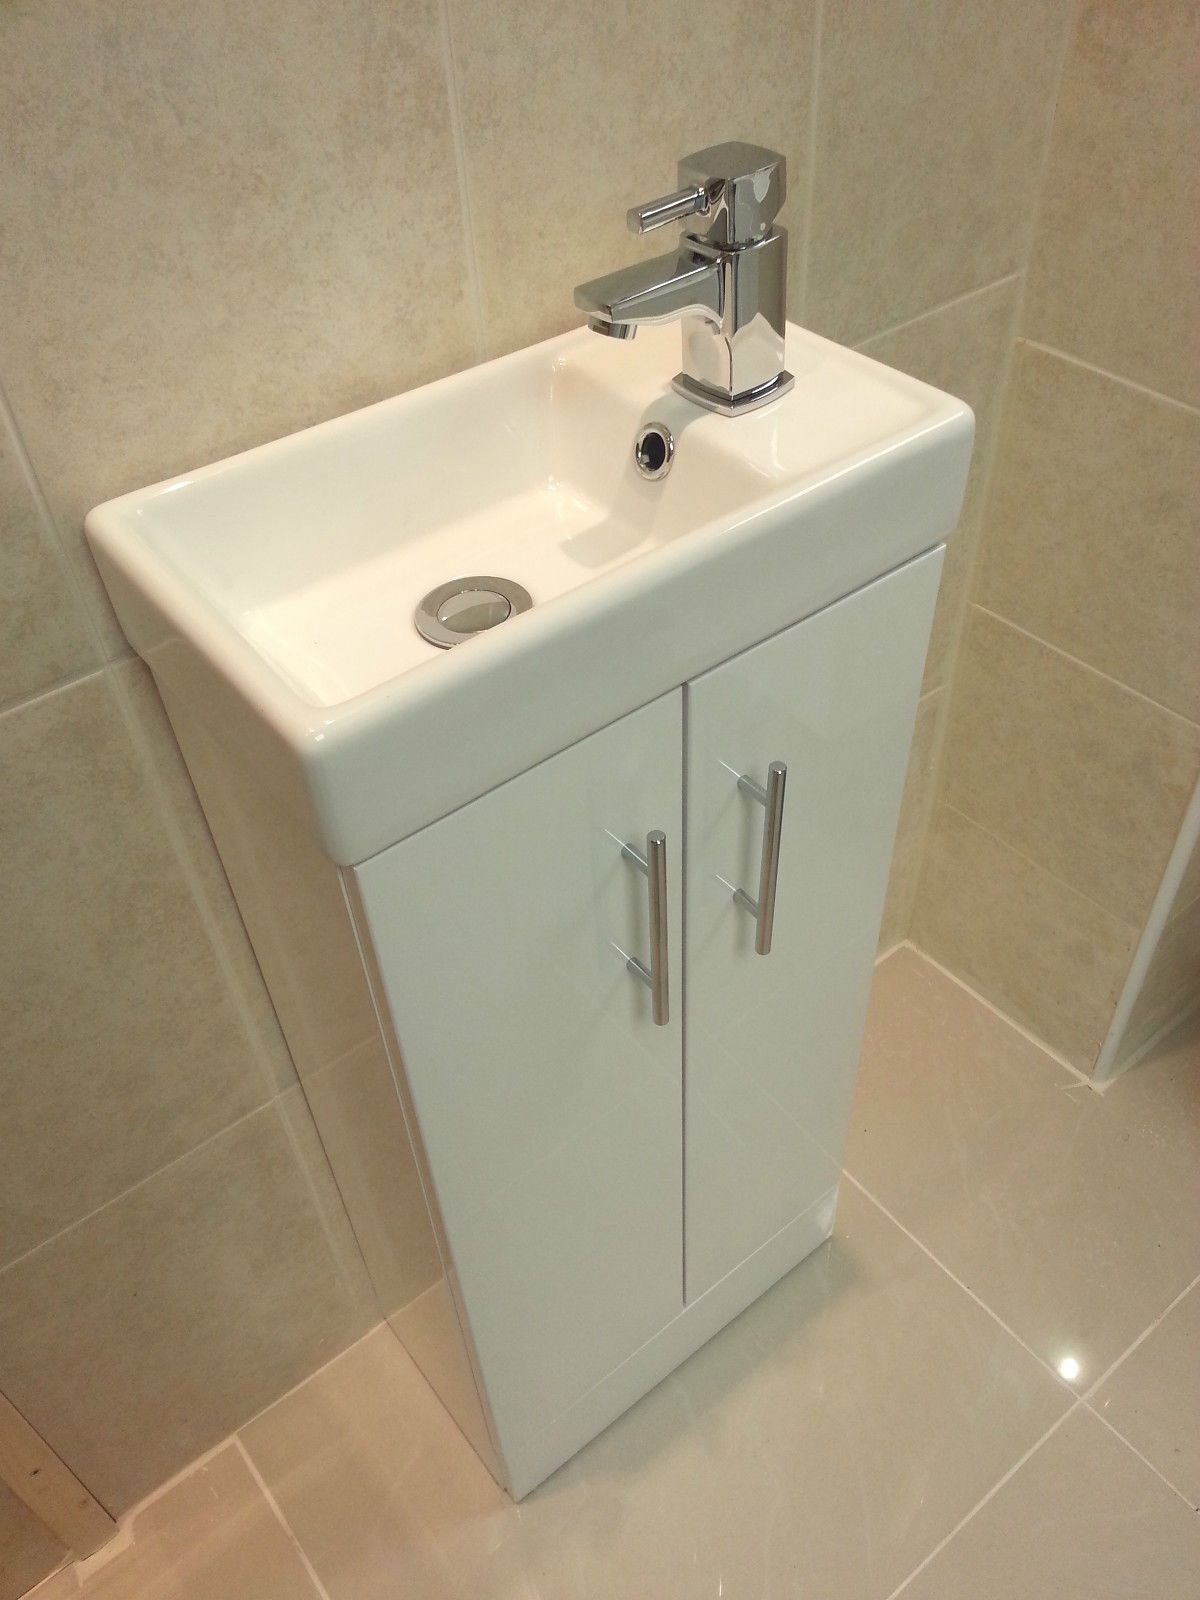 Ebay Bathroom Vanity With Sink: Compact 400 Mm Cloakroom Square Vanity Unit Ceramic Basin